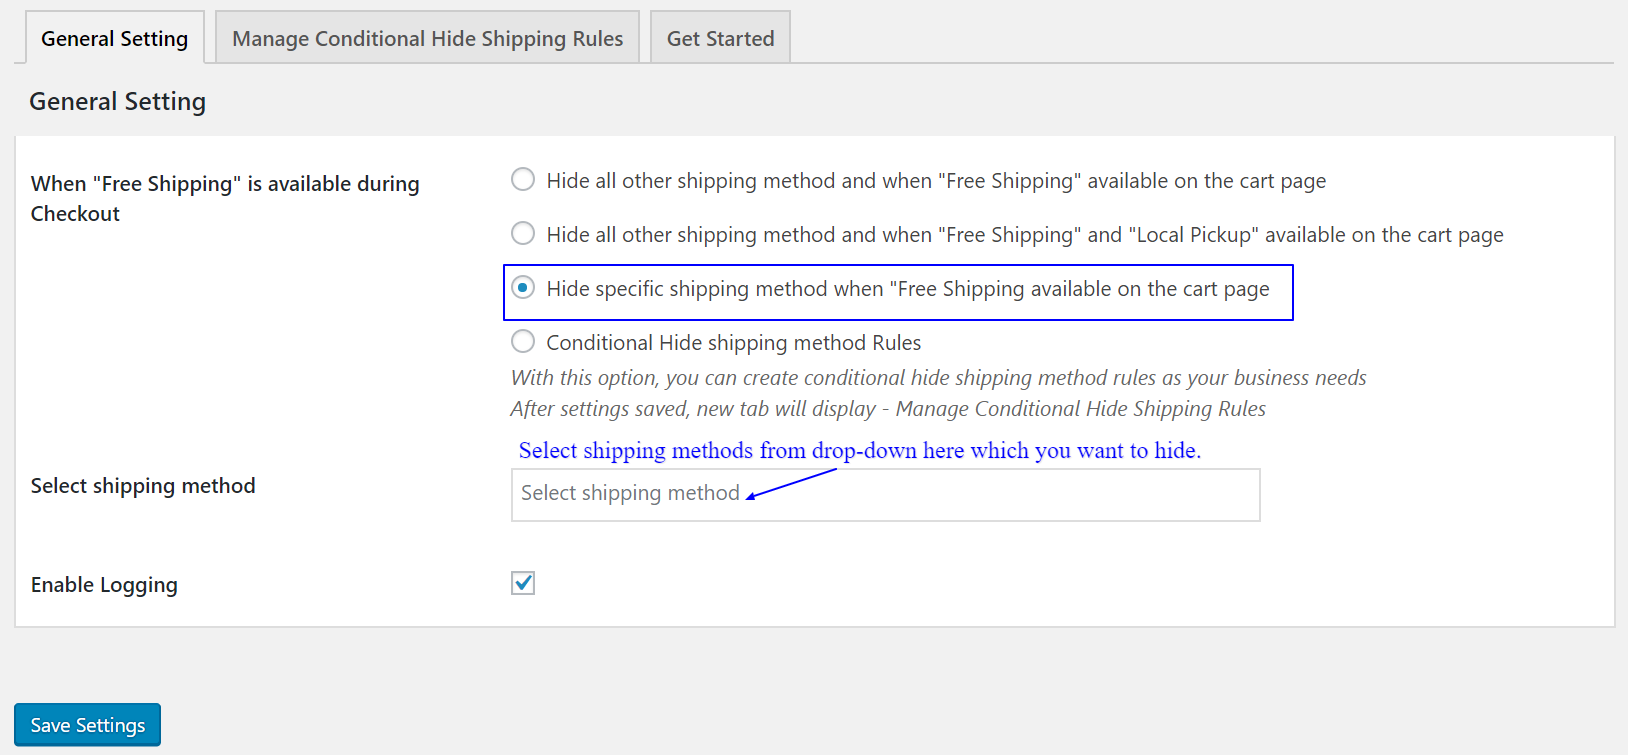 How to hide specific shipping method when Free Shipping available on the cart page